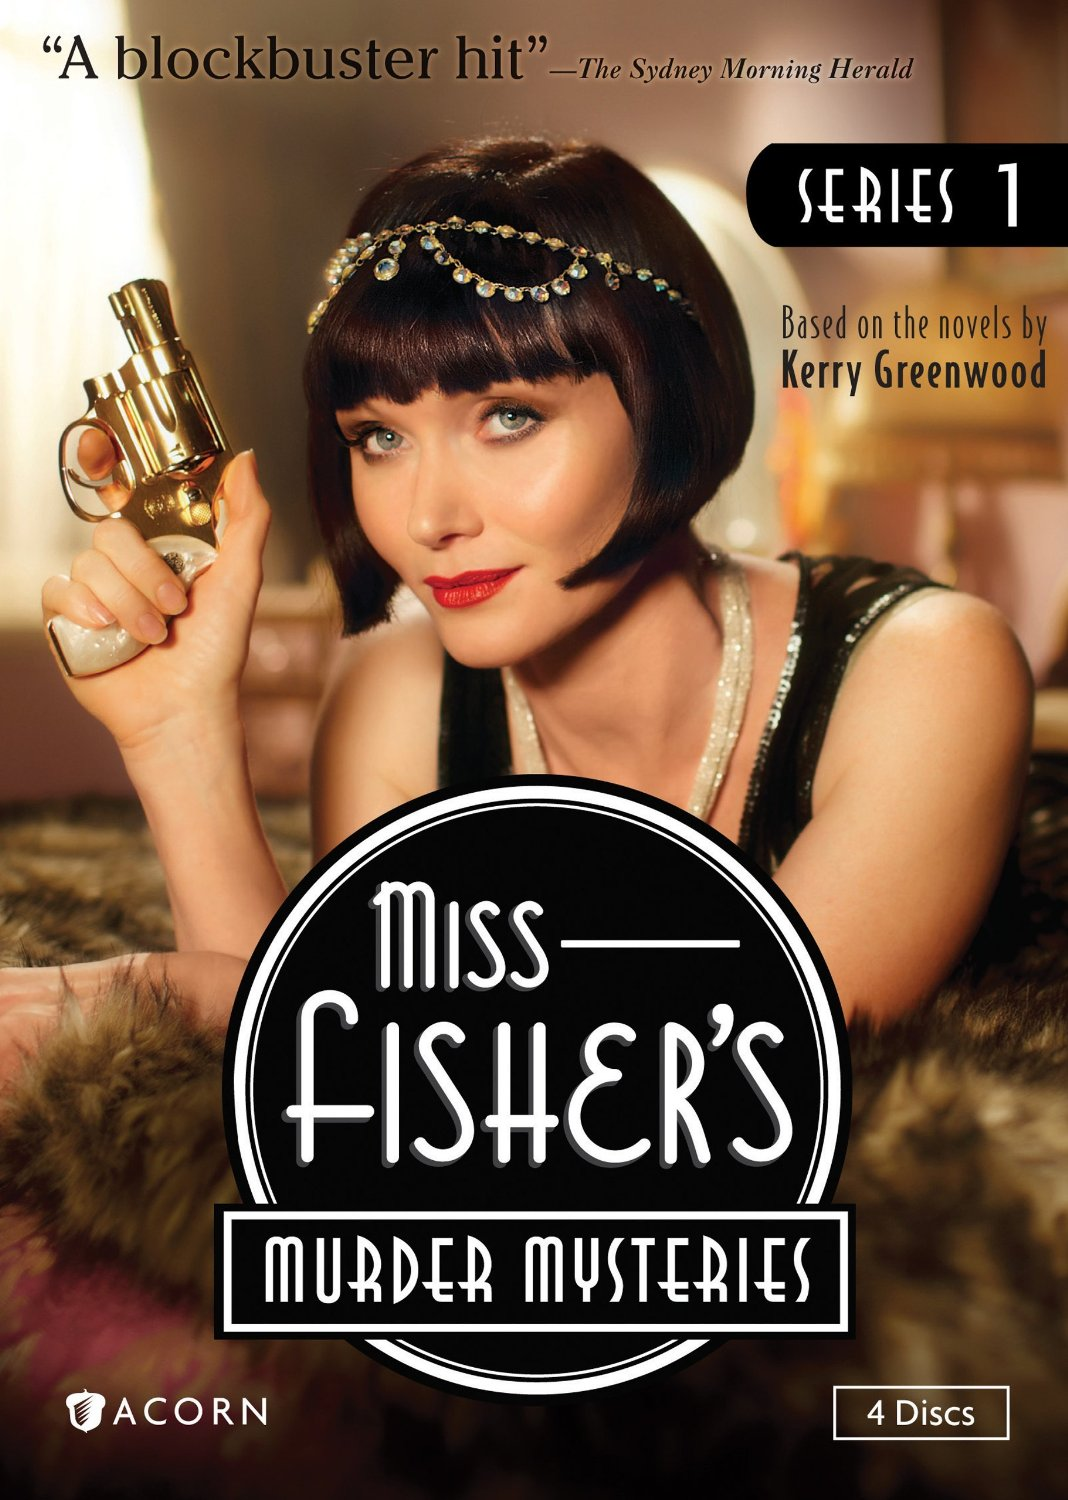 Adoramos Miss Fisher's Murder Mysteries